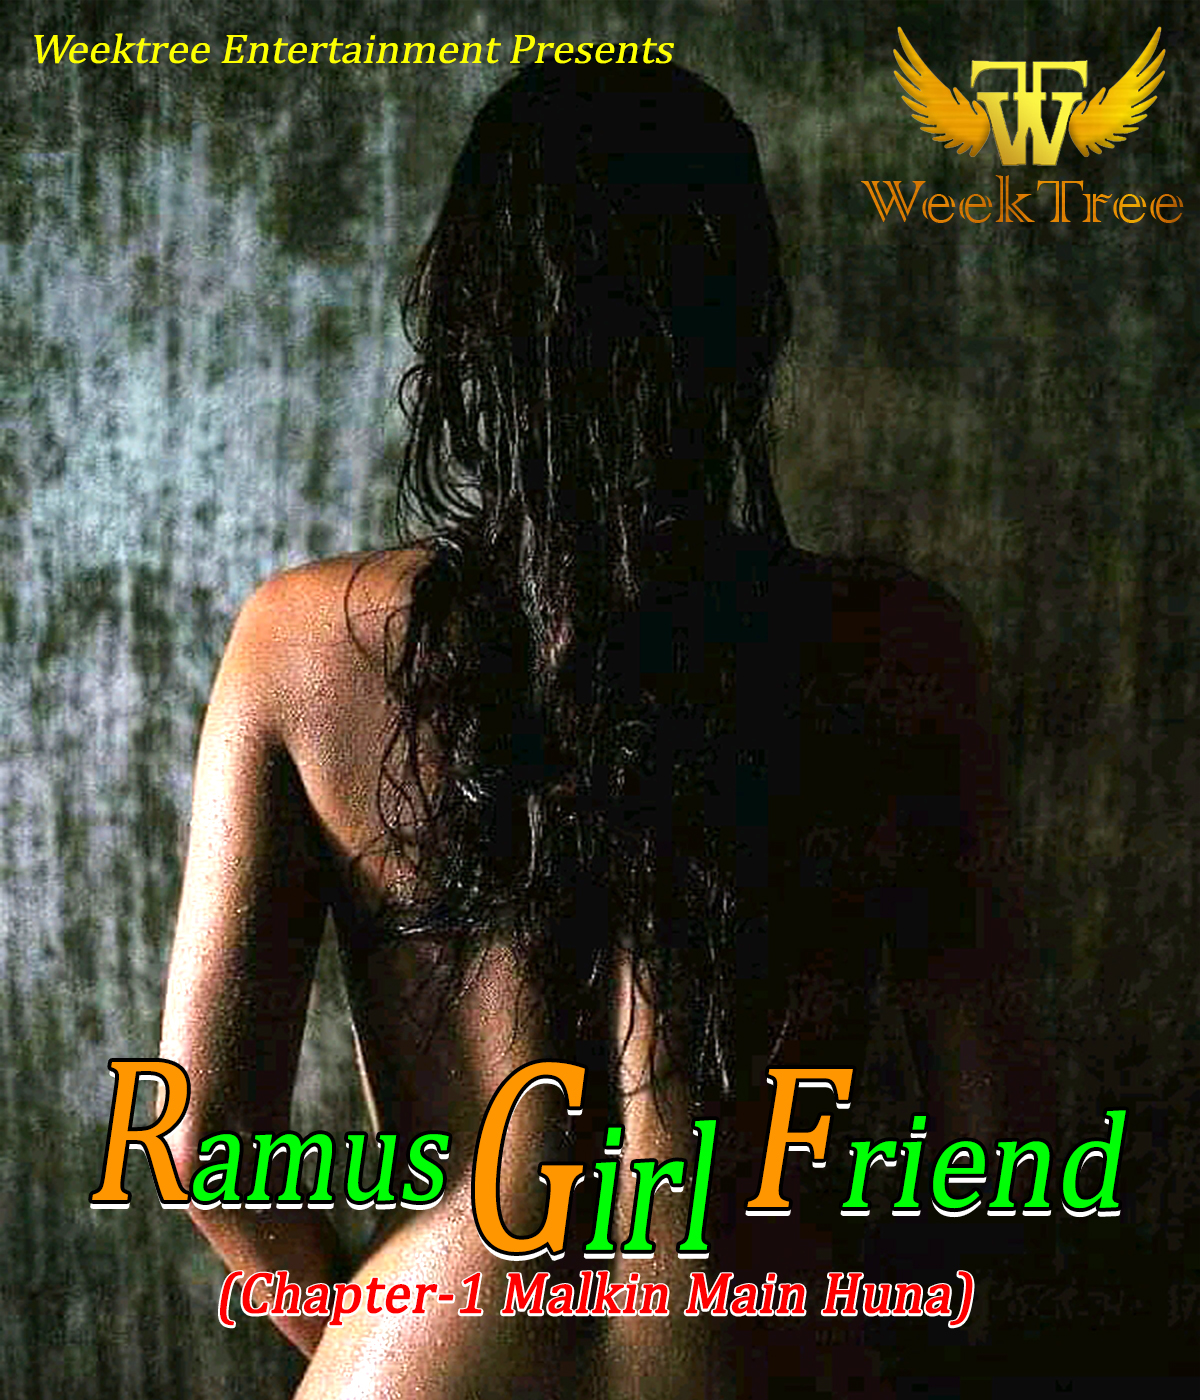 Ramus Girl Friend 2020 S01E01 Hindi Weektree Original Web Series 720p HDRip 140MB Download